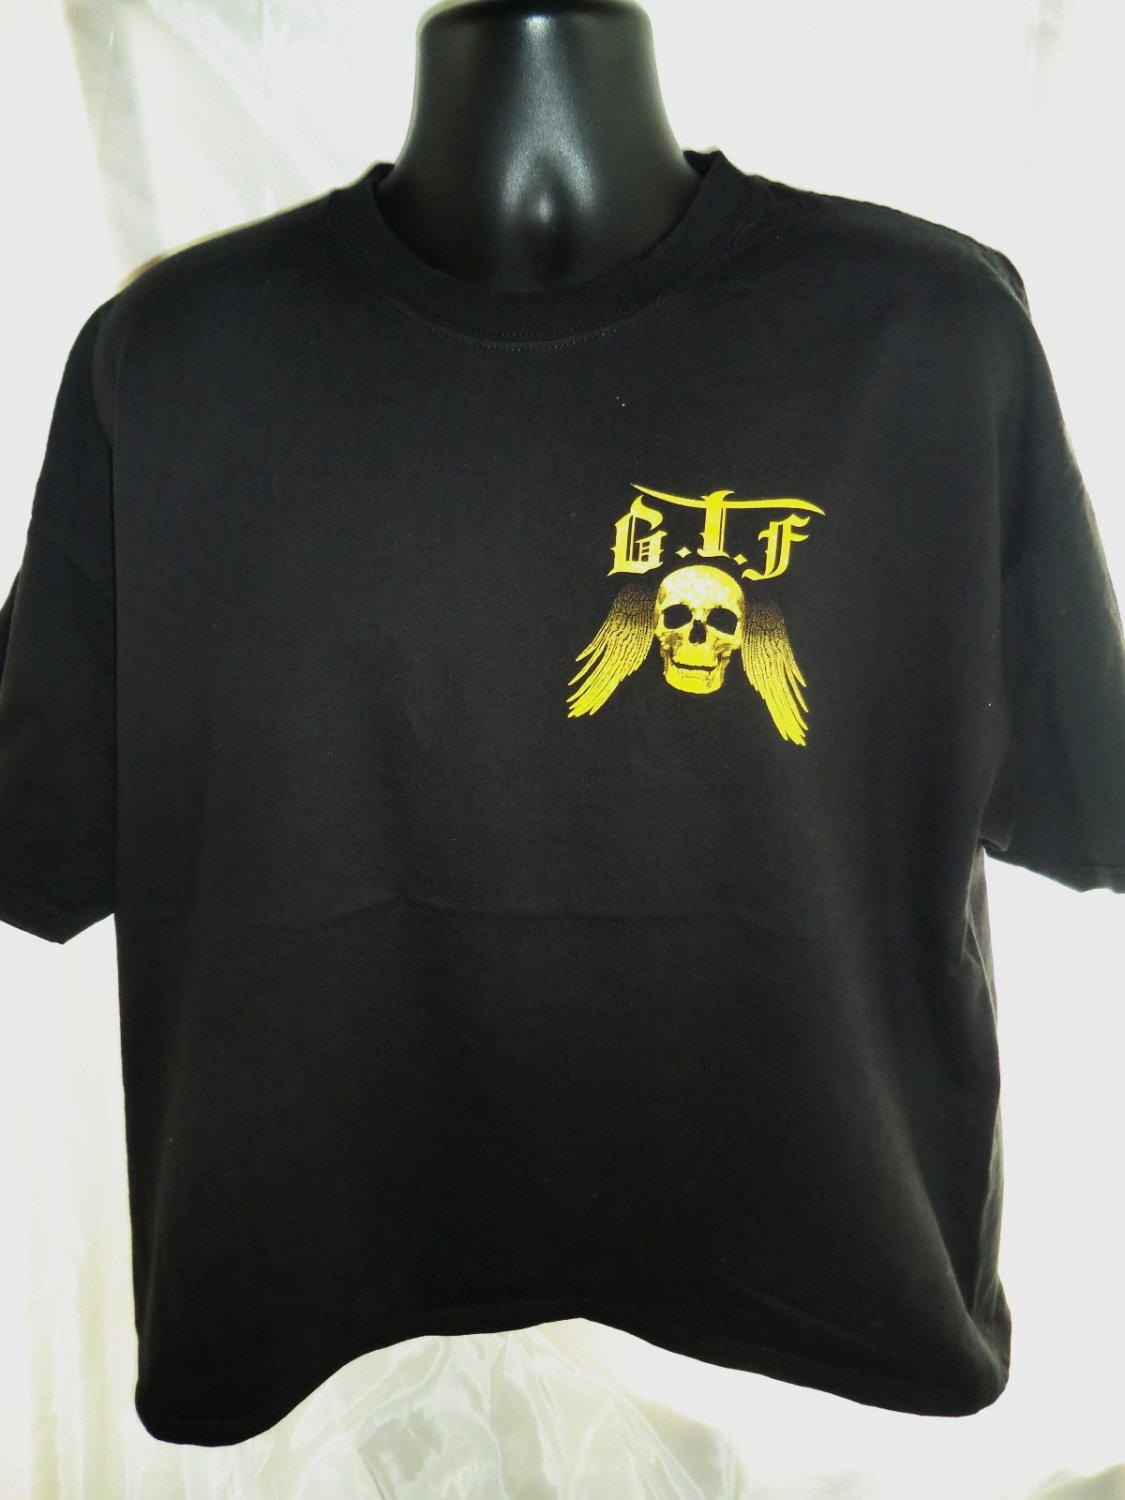 Gang Task Force 2009 T-Shirt Size XXL Police Cops